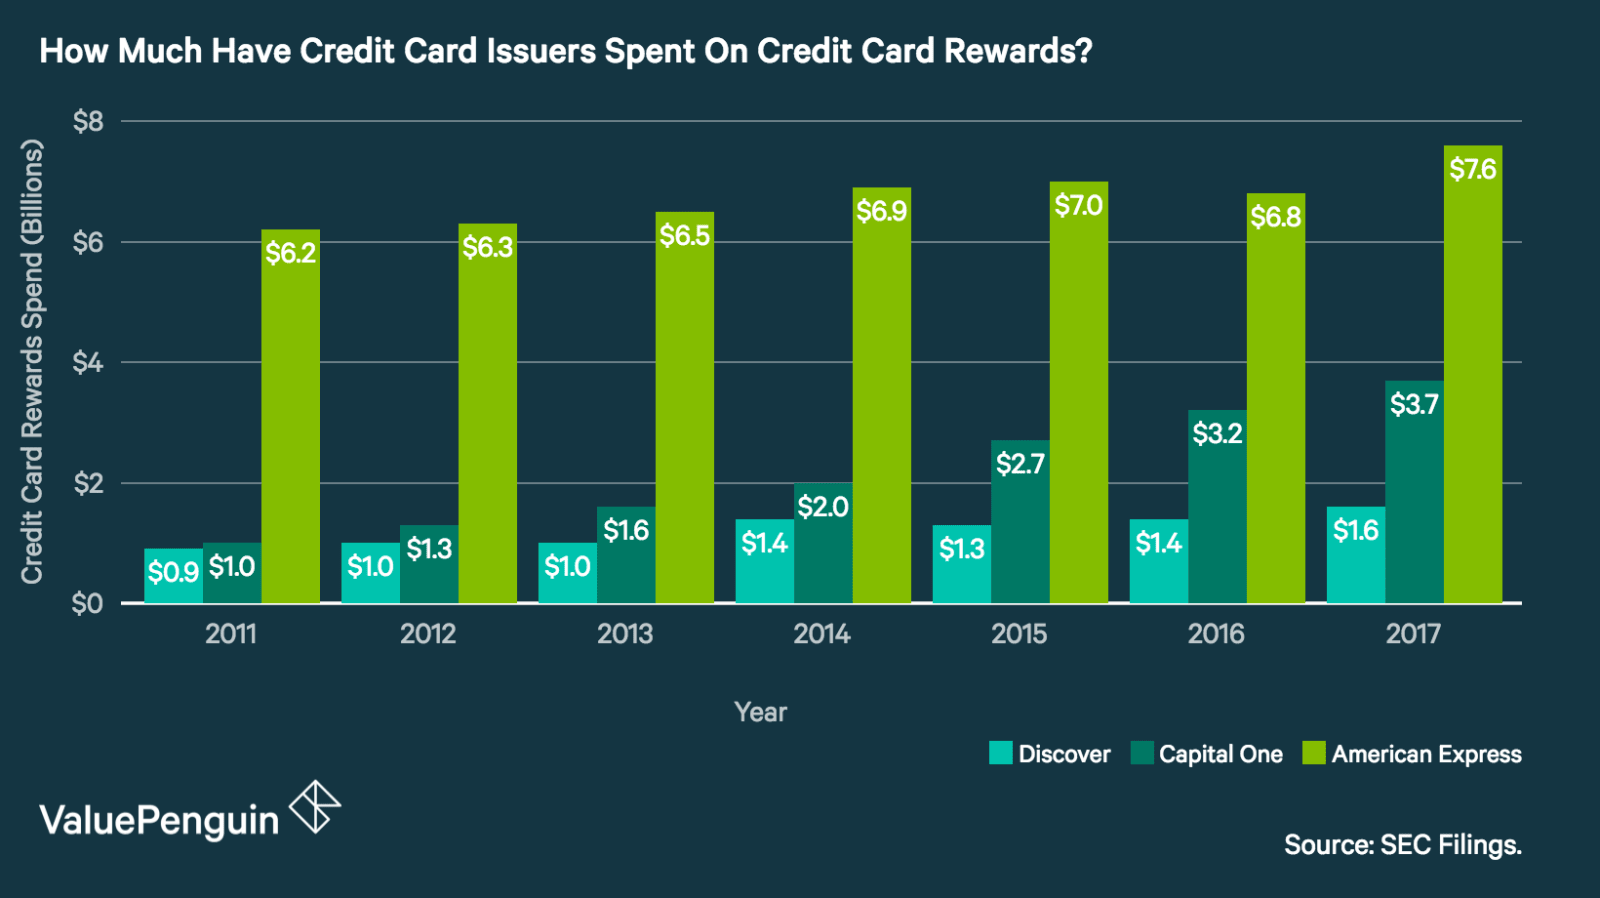 A graph showing the total annual spending on credit card rewards from 2011 to 2017, among the major card issuers.